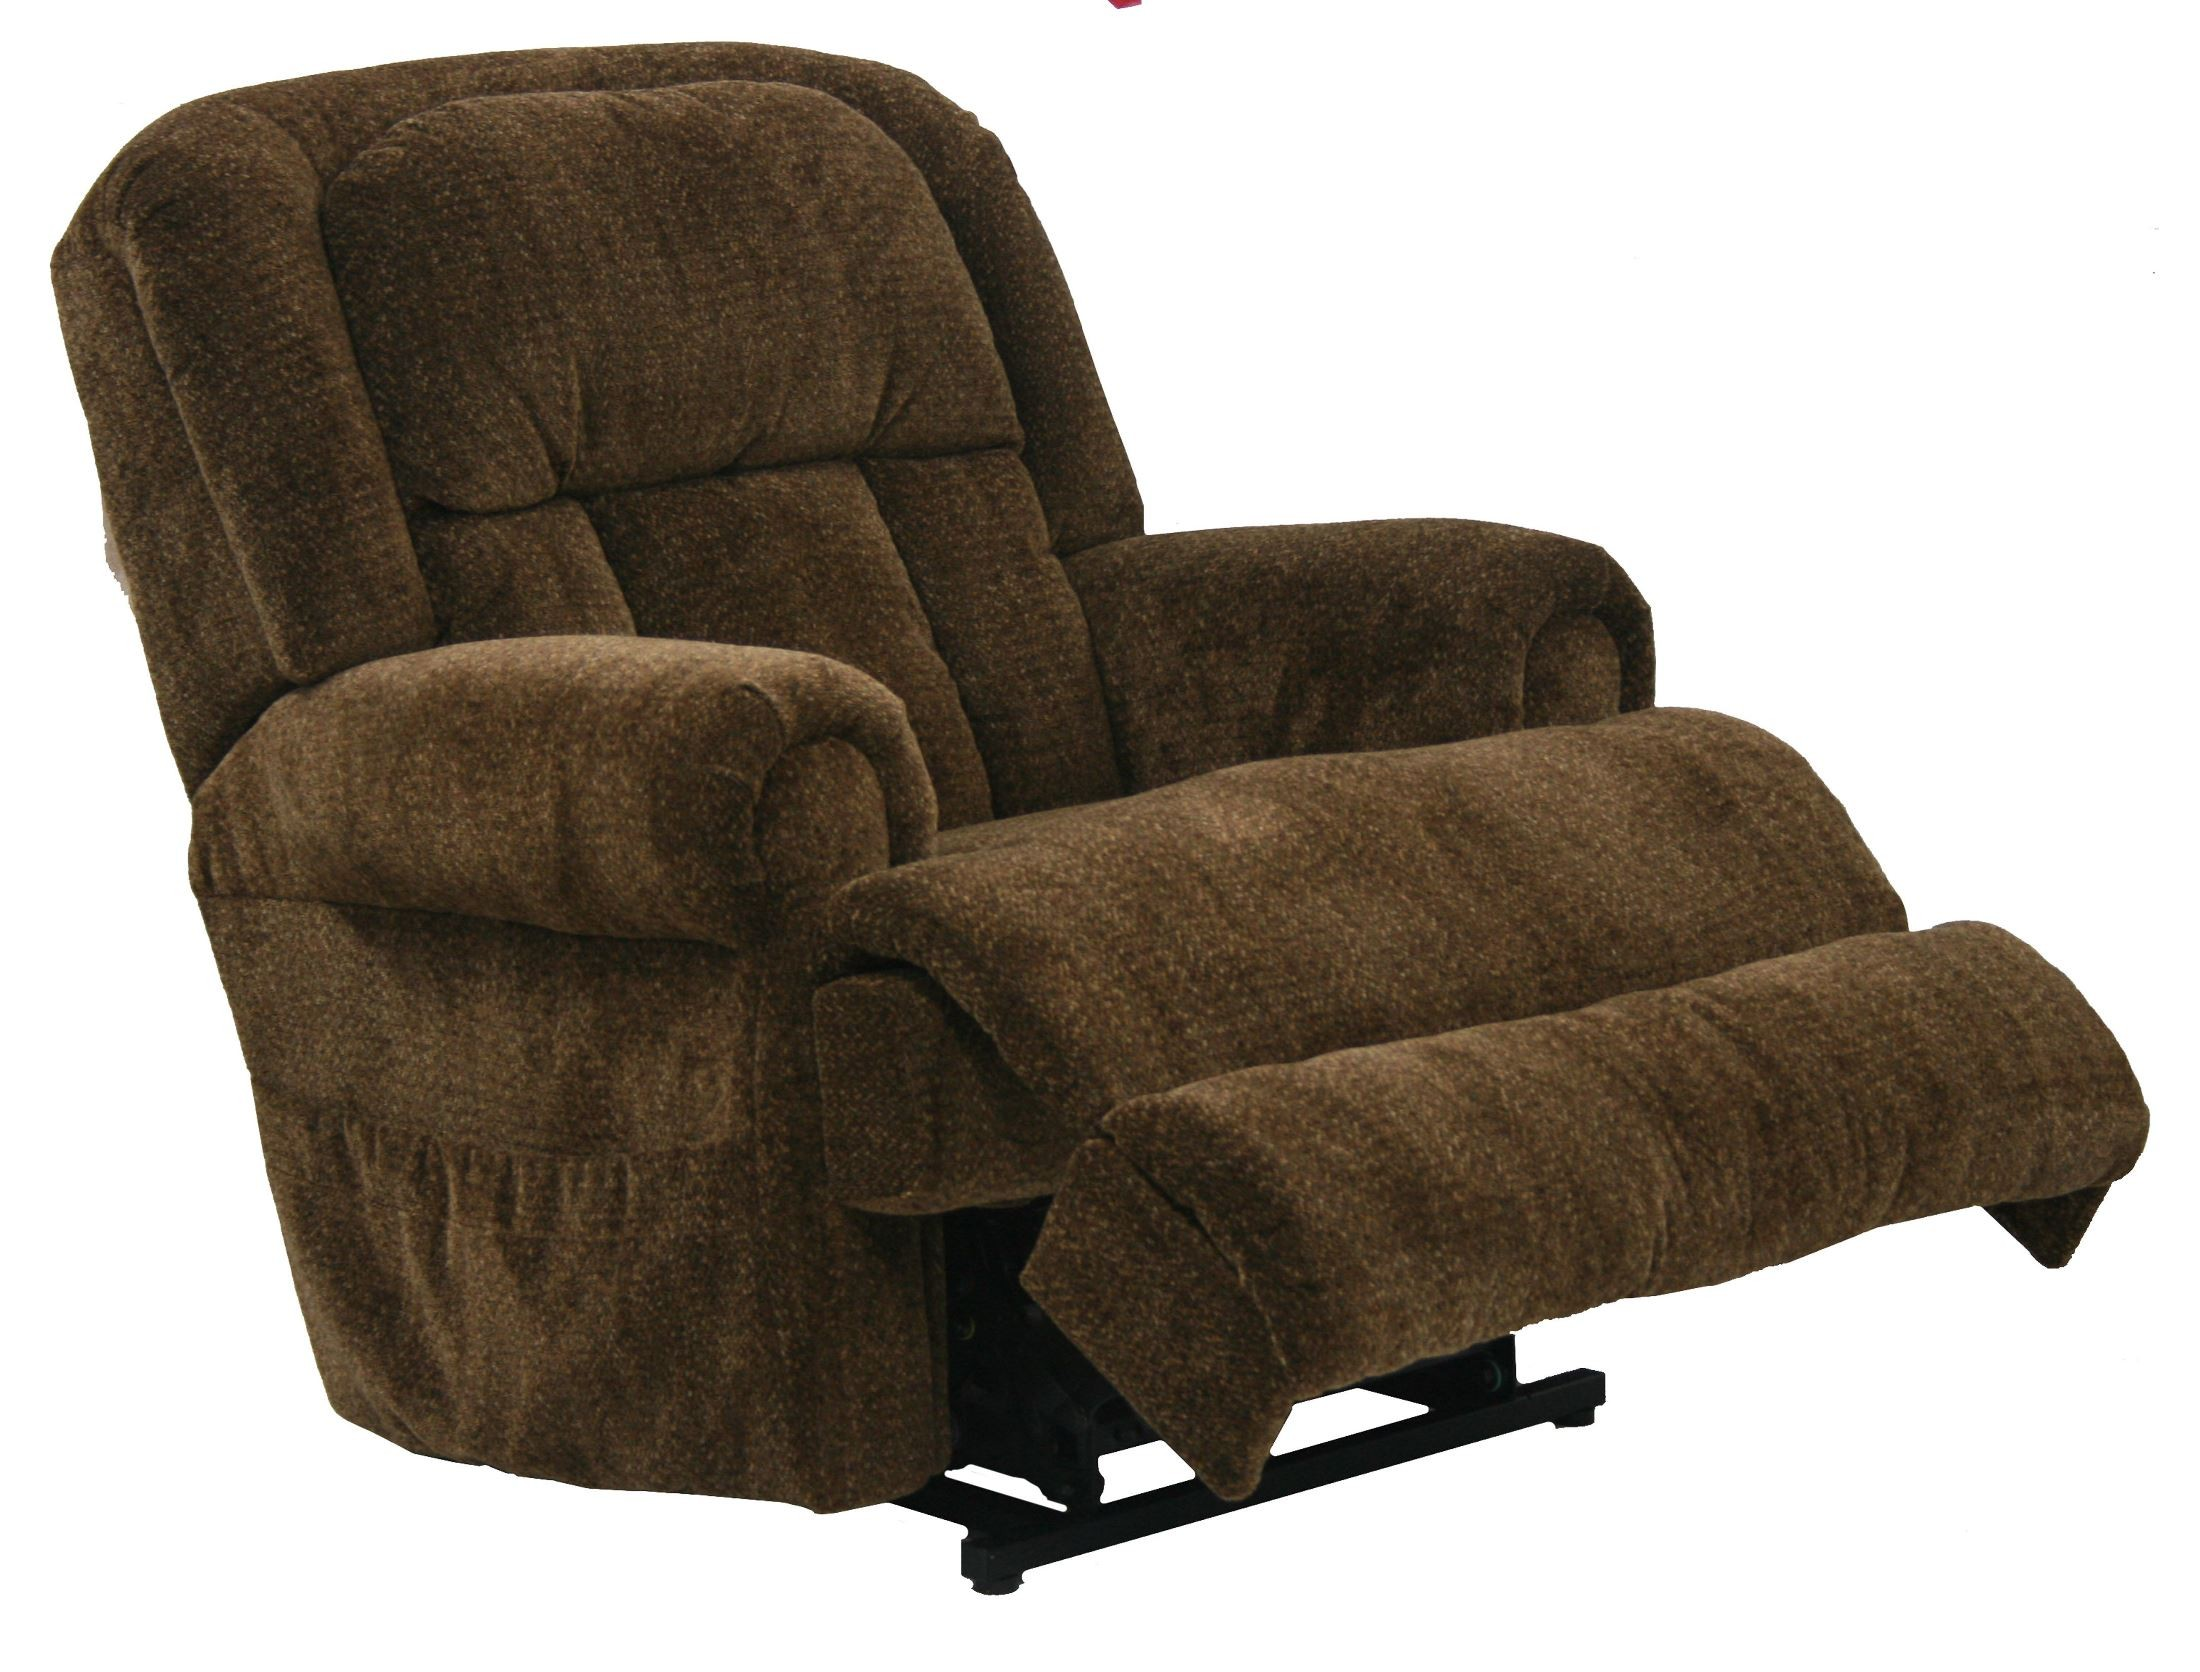 cheap lift chairs toyota sienna captains removal burns earth power recliner from catnapper 4847176329